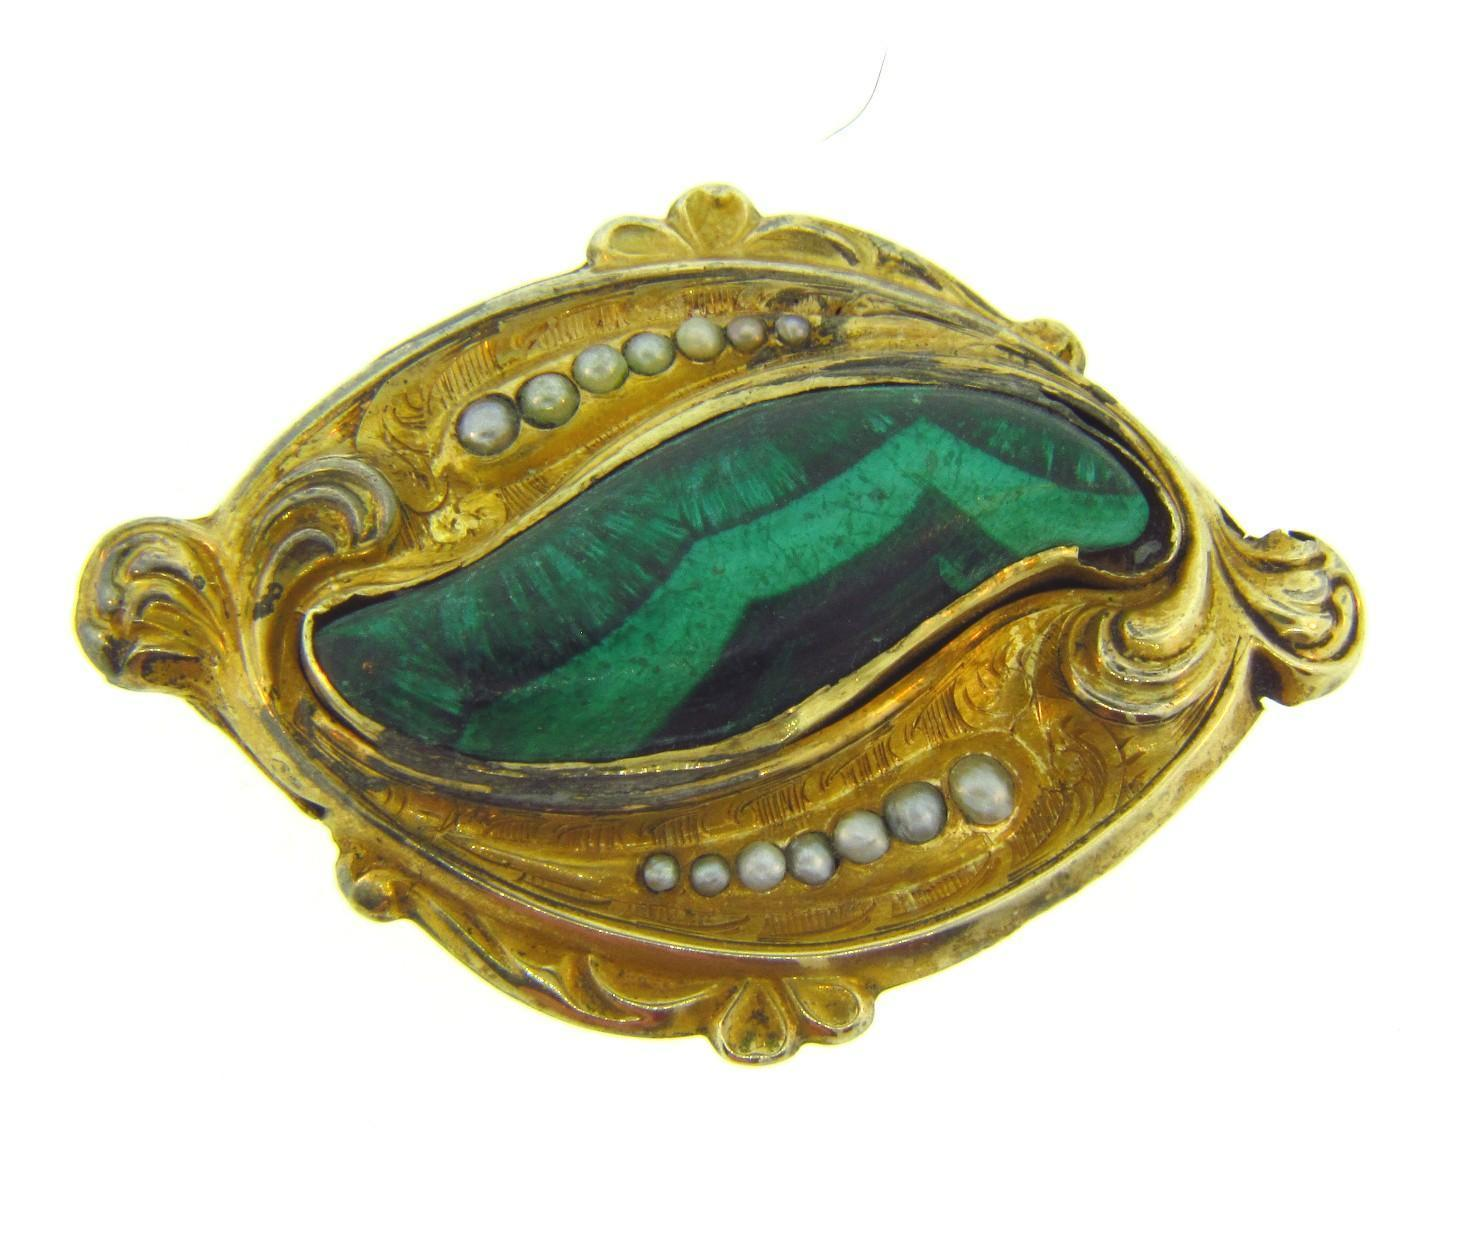 Early 1900's gold filled Brooch with malachite and seed pearls